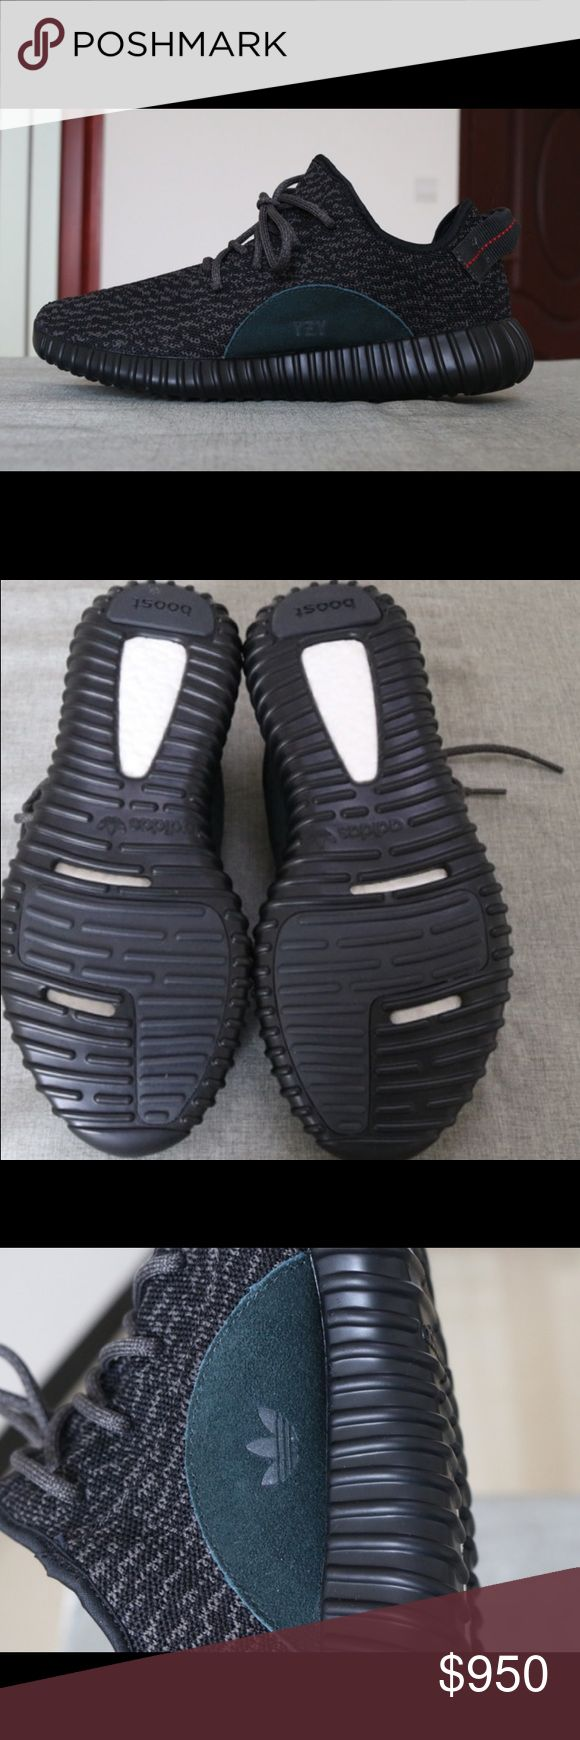 a2b6254ce 17 Best ideas about Footlocker Yeezy Boost on Pinterest